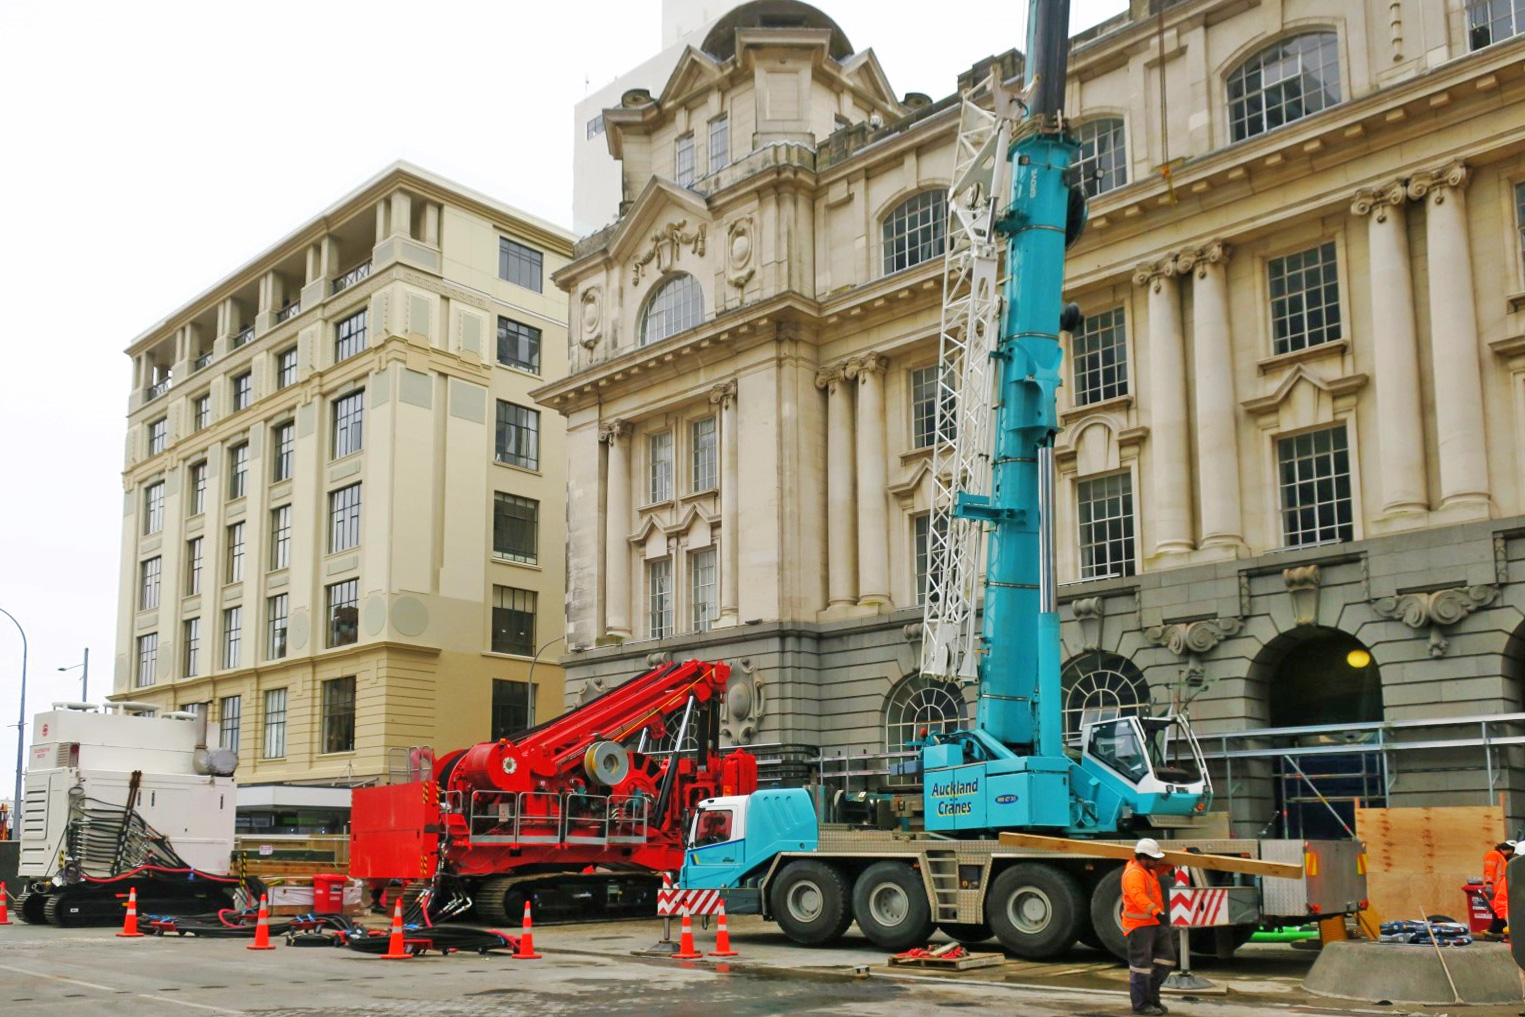 This bright red 90 tonne piling rig named Sandrine worked inside and outside the historic Chief Post Office (Britomart Transport Centre) building until being returned to France in early 2018. This was taken in August 2017.